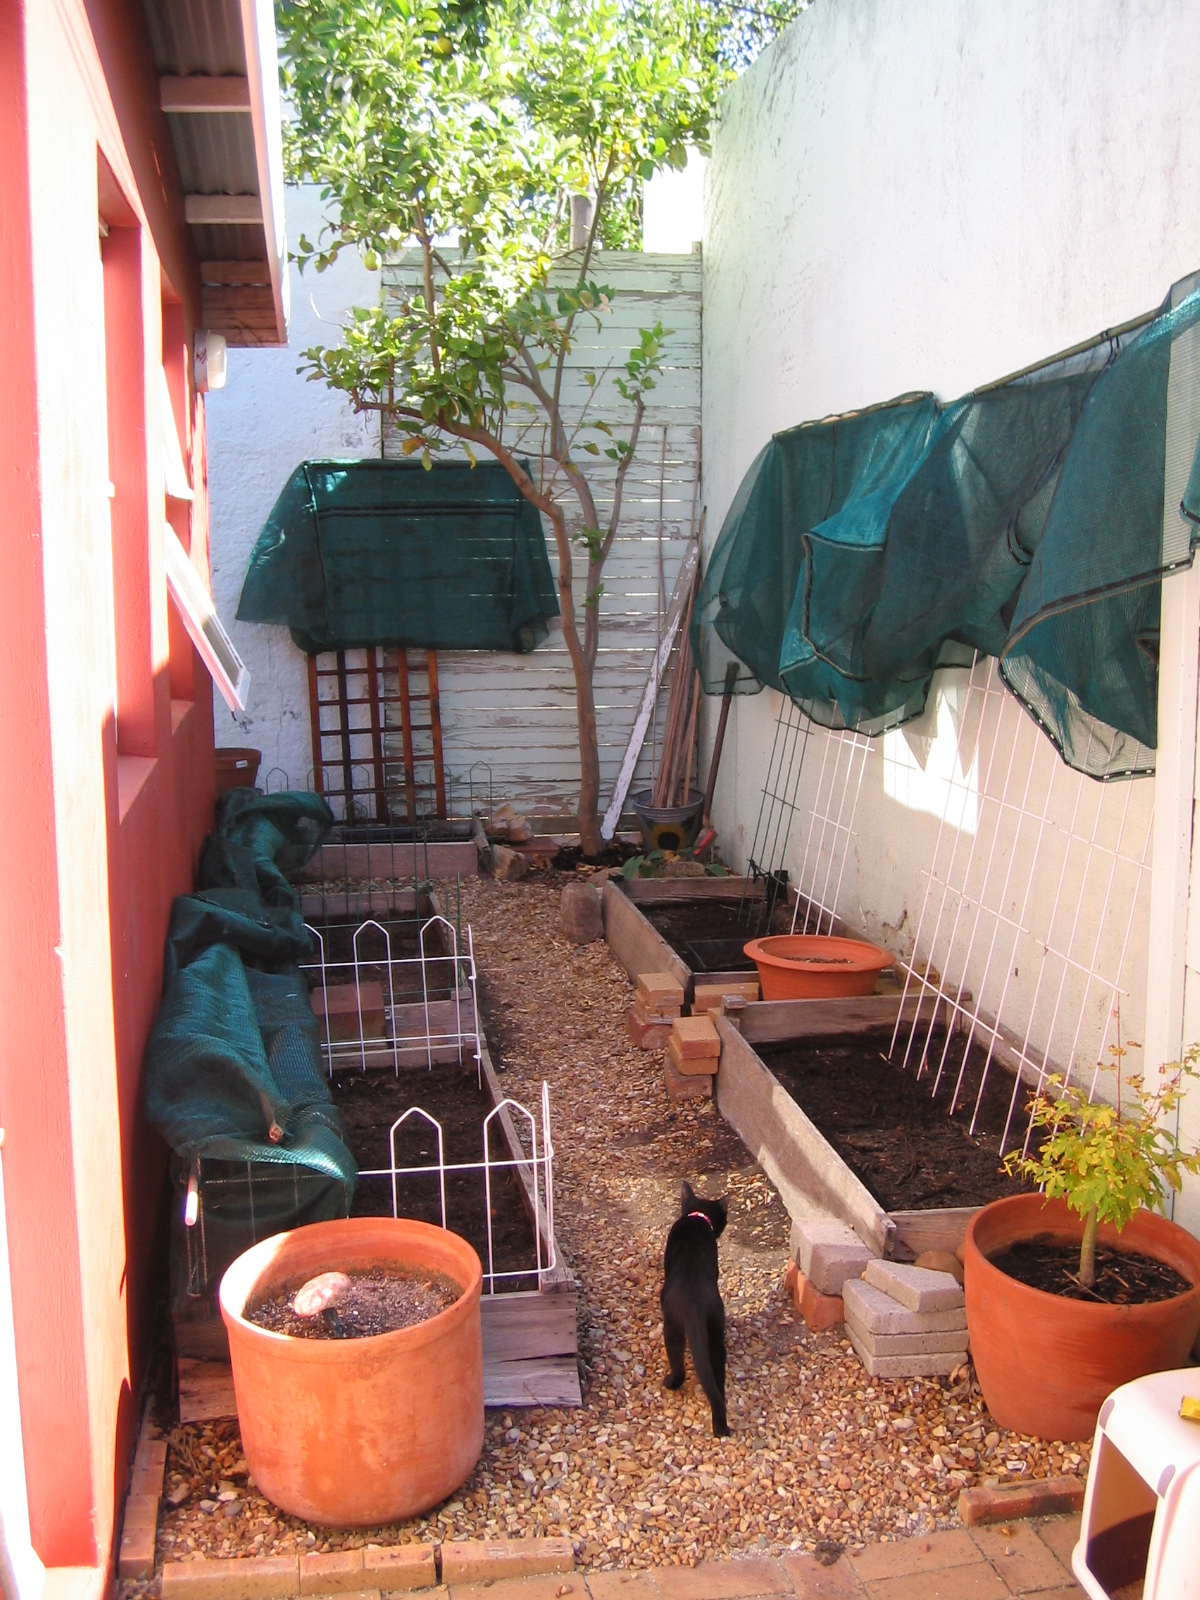 I cleaned up the beds and installed shade netting to keep Perry out of them. Here's the culprit inspecting my handiwork